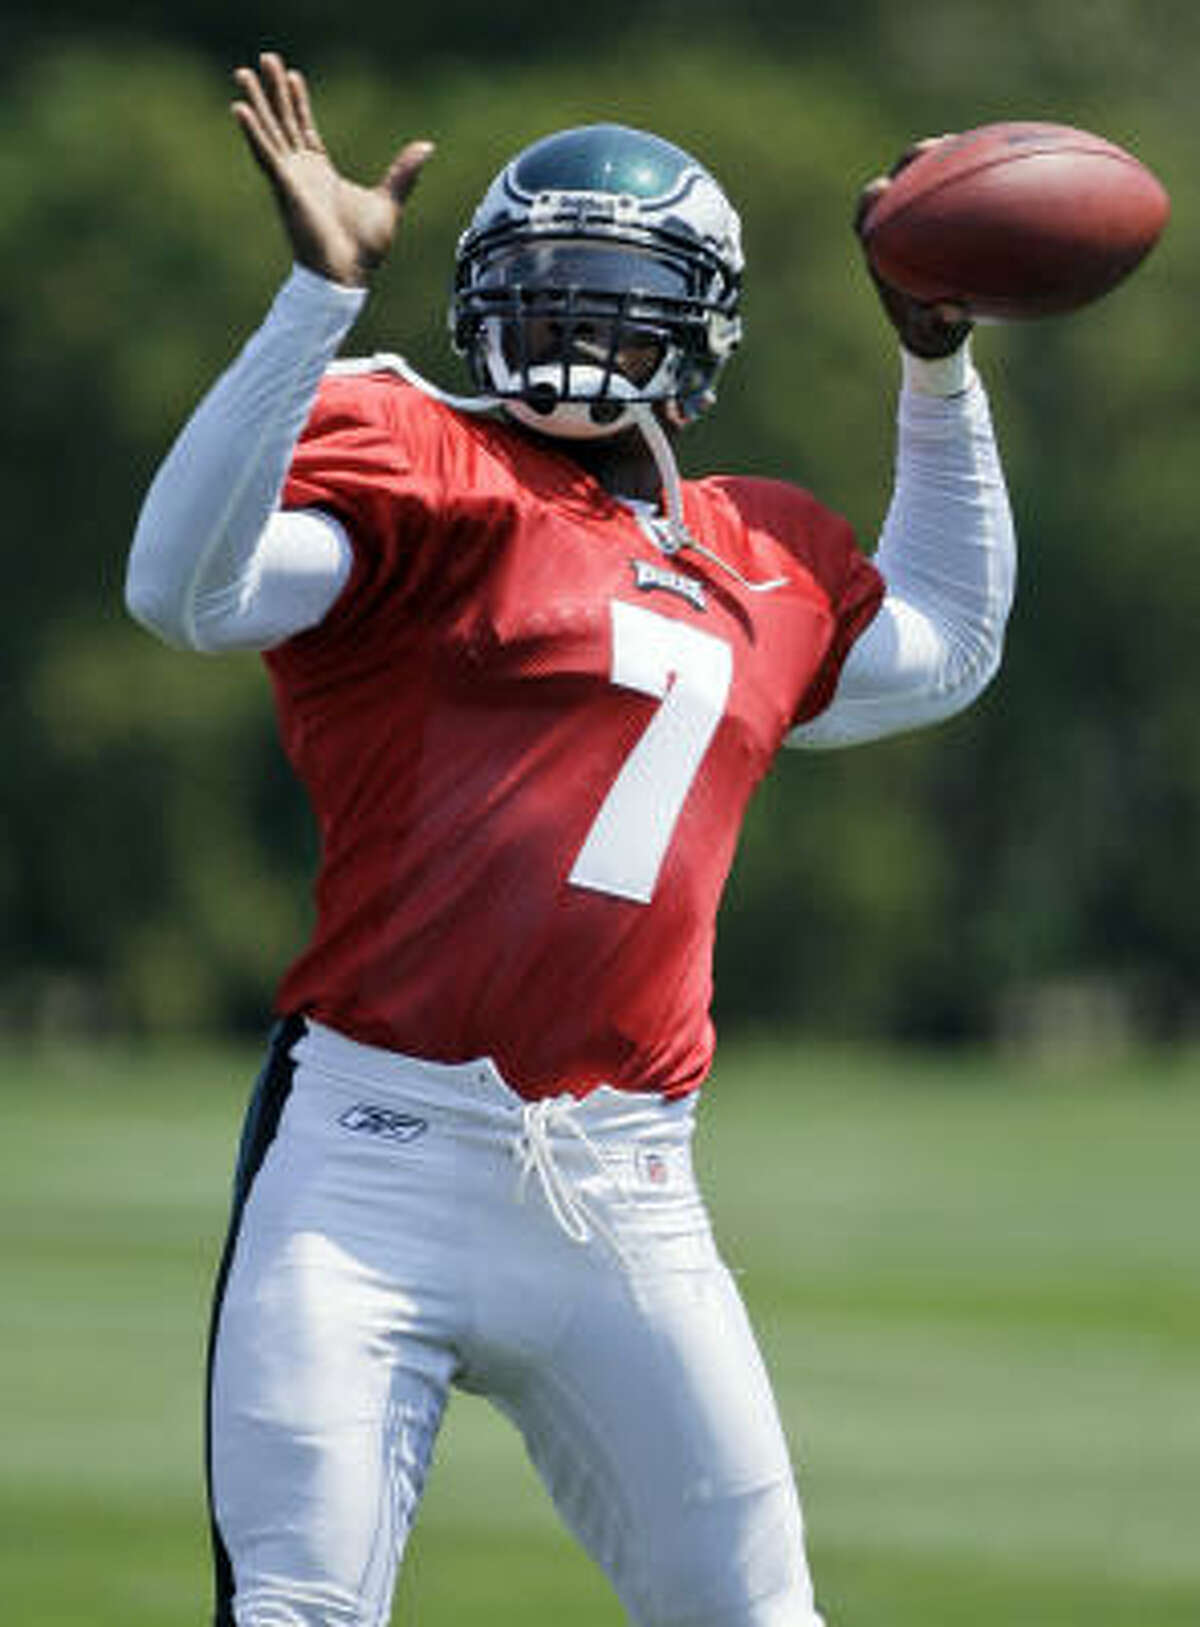 Michael Vick is back in the NFL as he gets another chance to play. Vick has to serve a six regular season games suspension before he gets a shot under center for the Philadelphia Eagles.